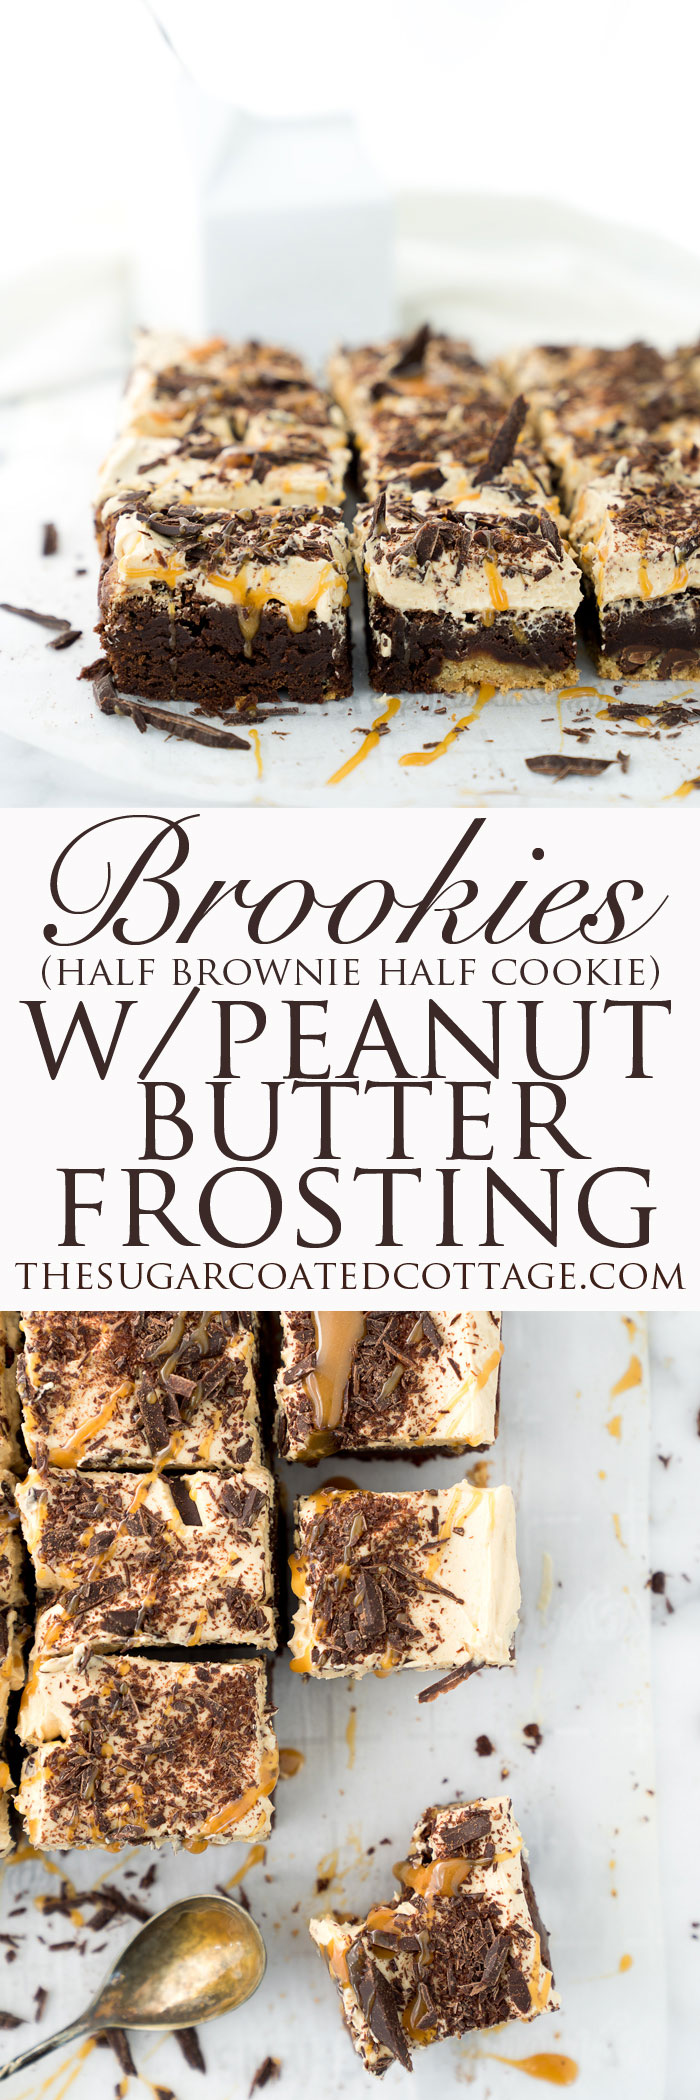 THE BEST BROOKIES ever! Half brownie, half chocolate chip cookie, whipped peanut butter frosting! | thesugarcoatedcottage.com | #brookies #brownies #peanut